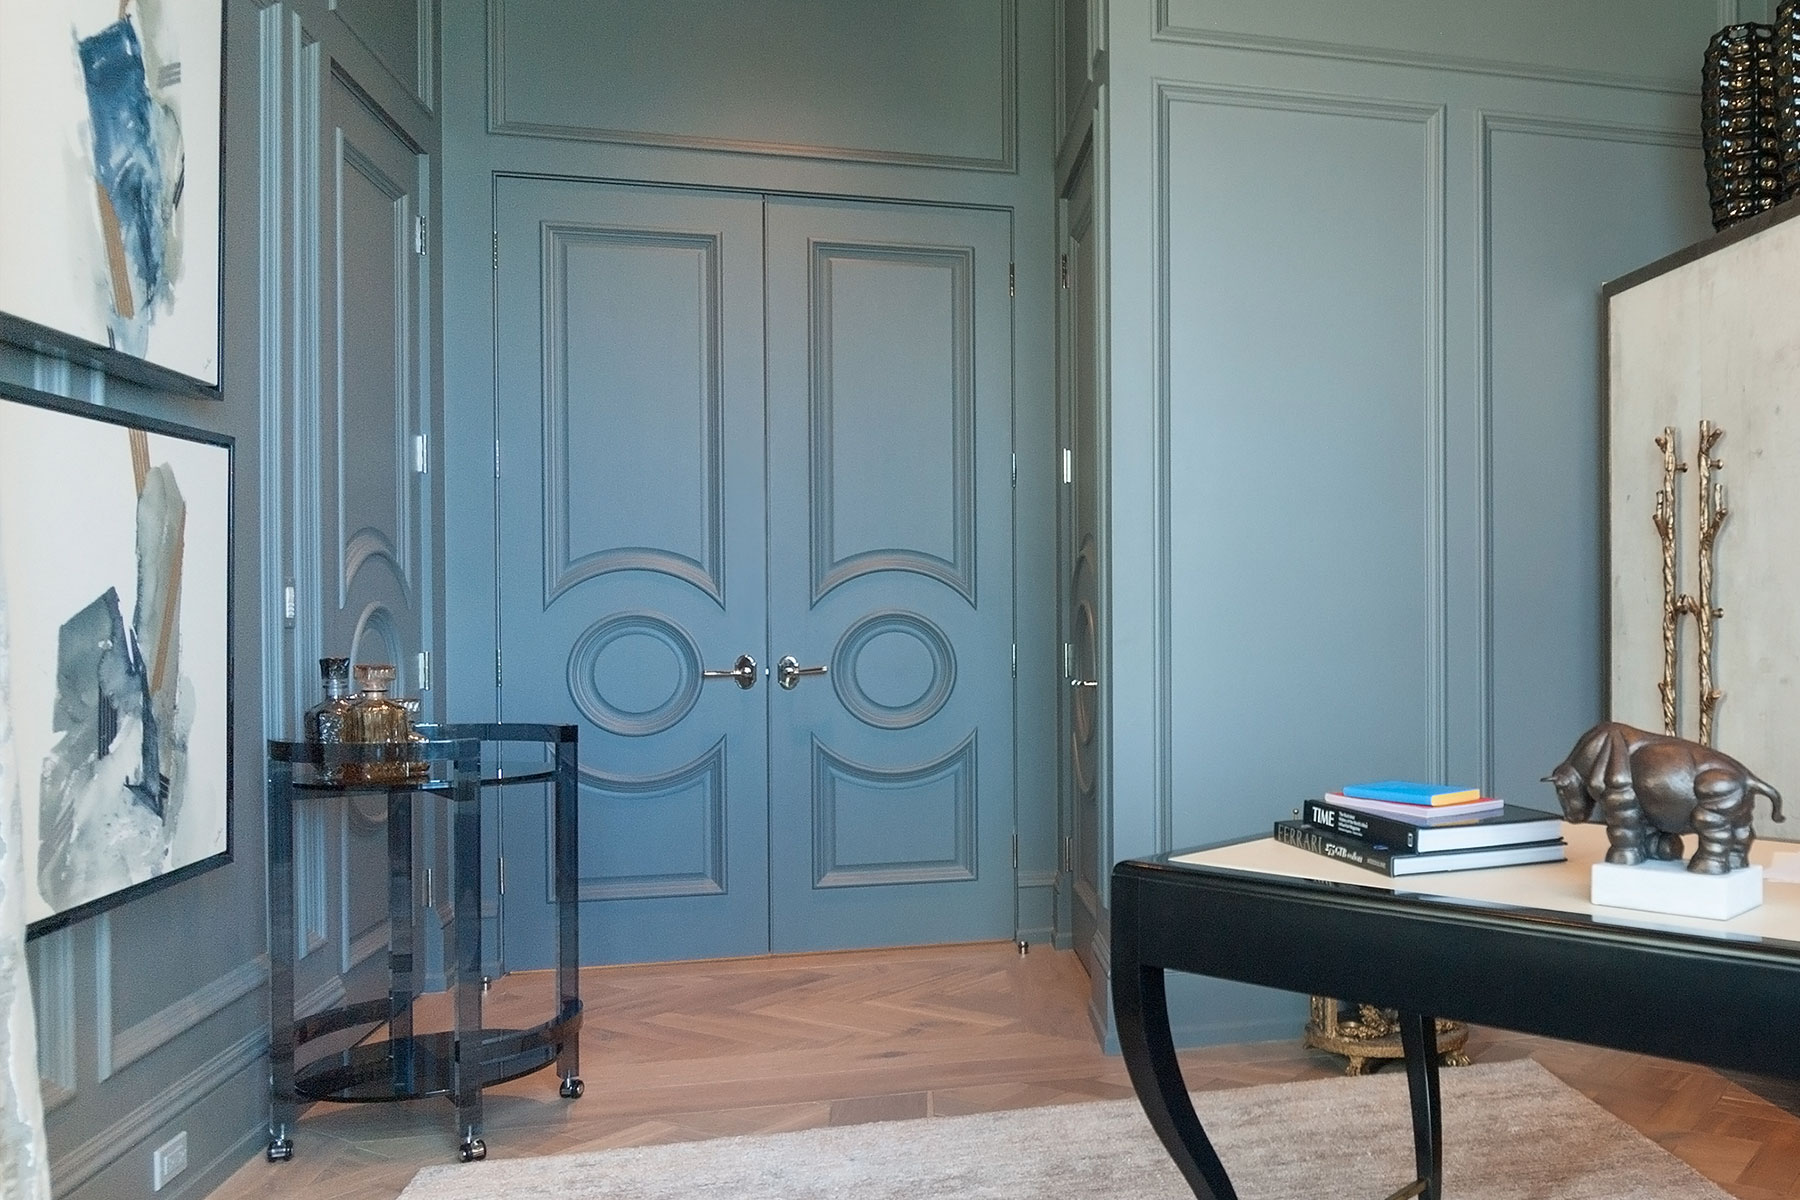 Pair of TS3140 inteiro doors in MDF with Big Bolection (BBM) moulding and Scoop (B) panel